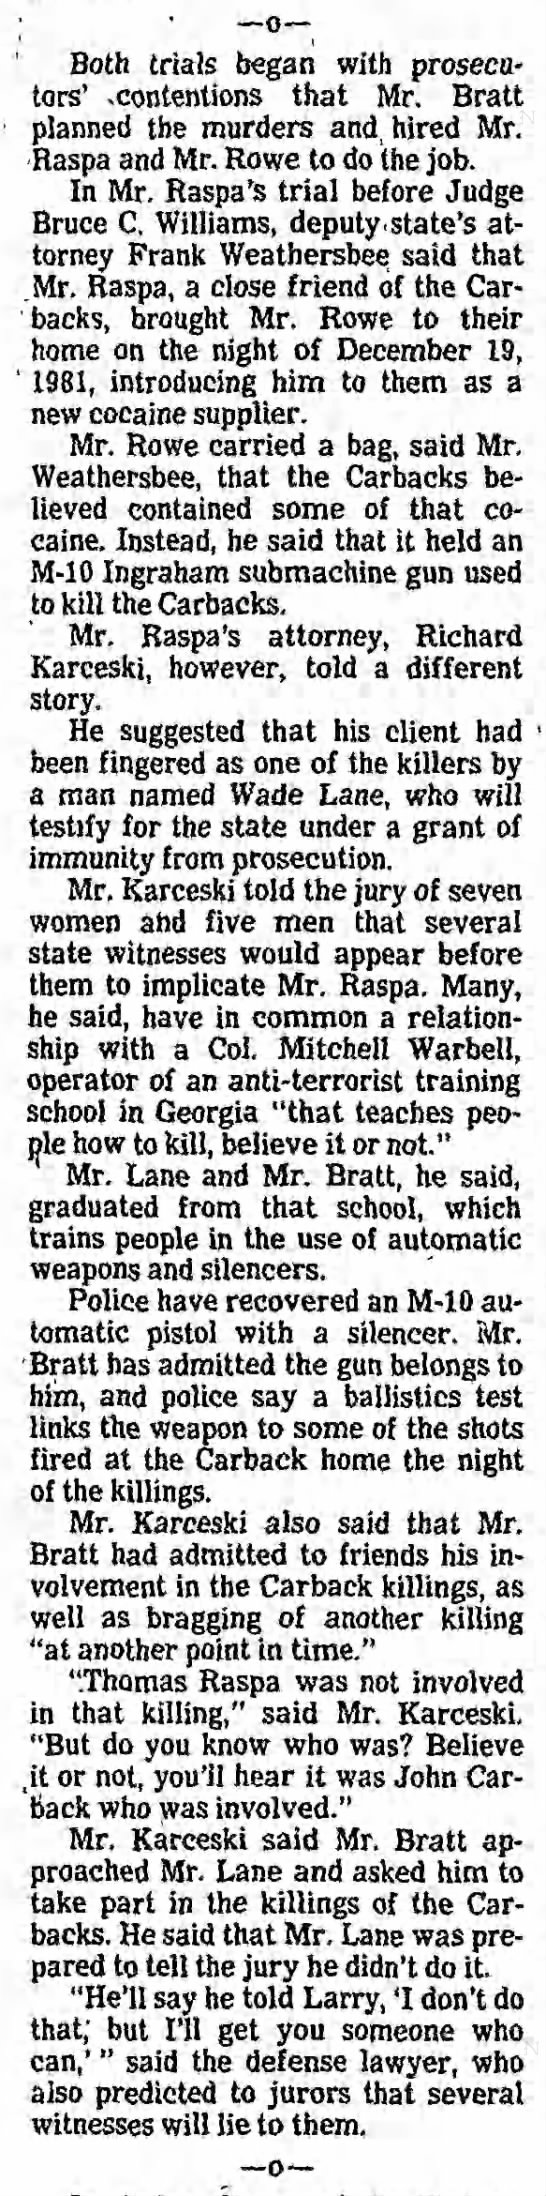 1983 Aug 3-Carback, John and Donna-Parallel murder trials open in Arundel court (Continued 2)